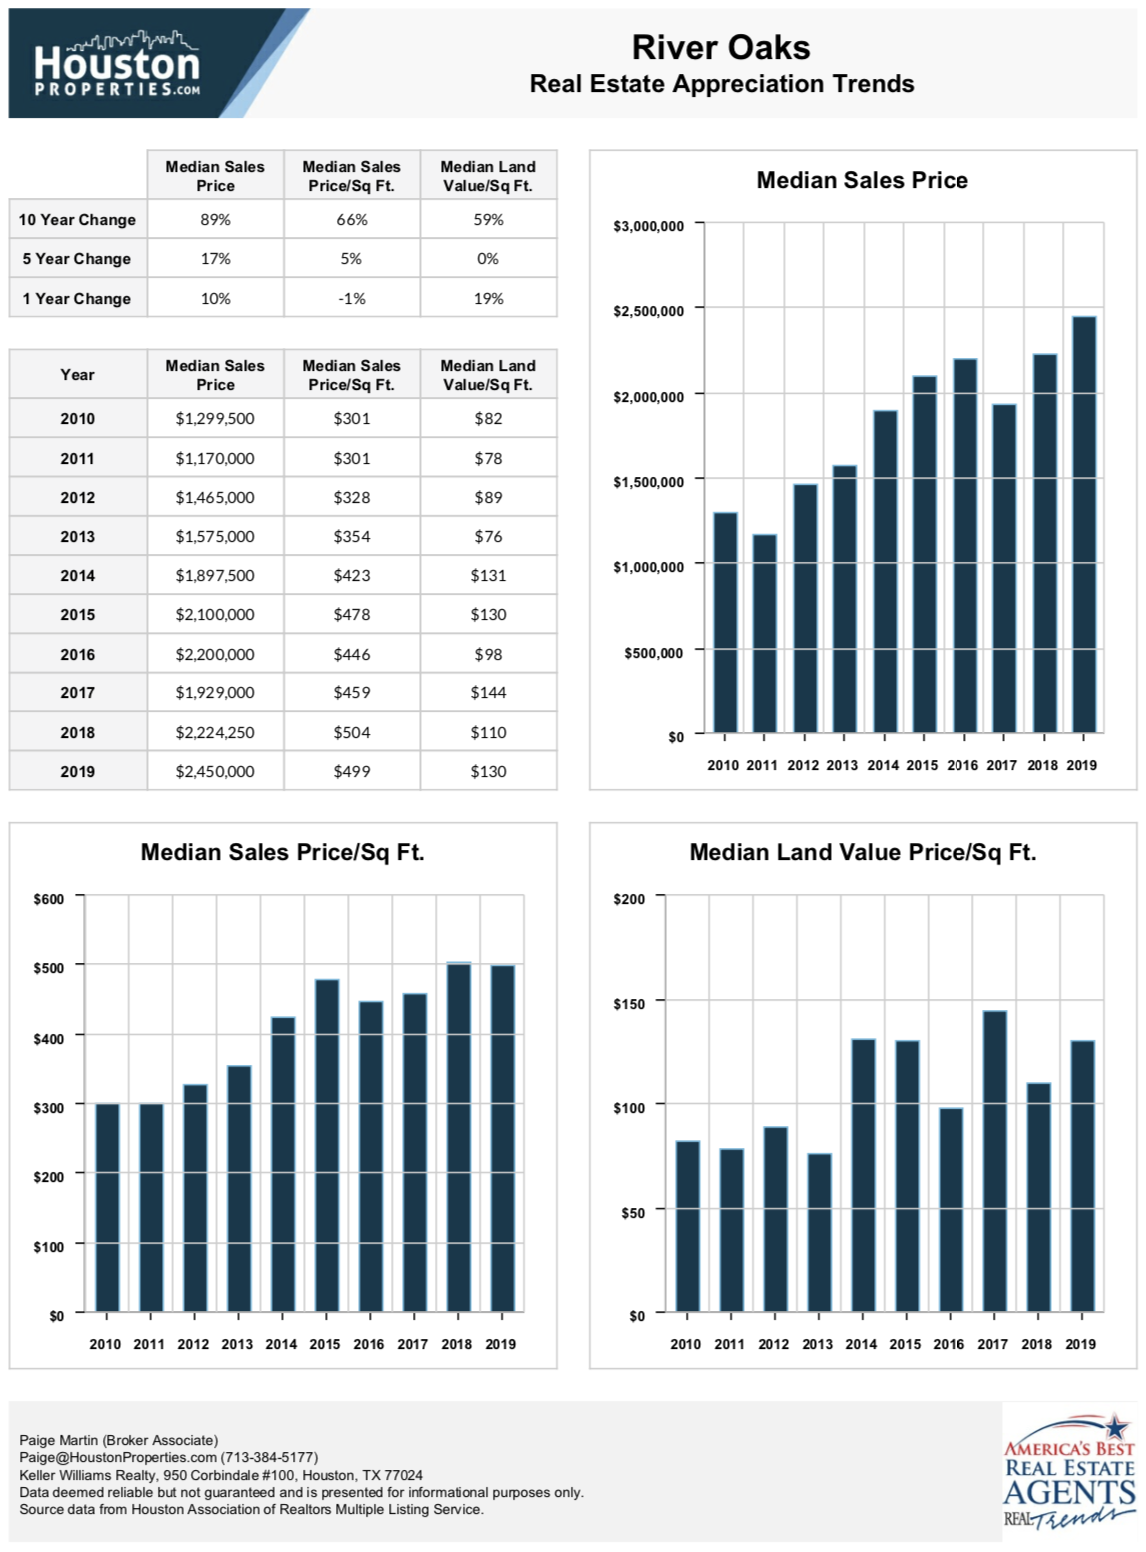 River Oaks 10 Year Real Estate Appreciation Rates